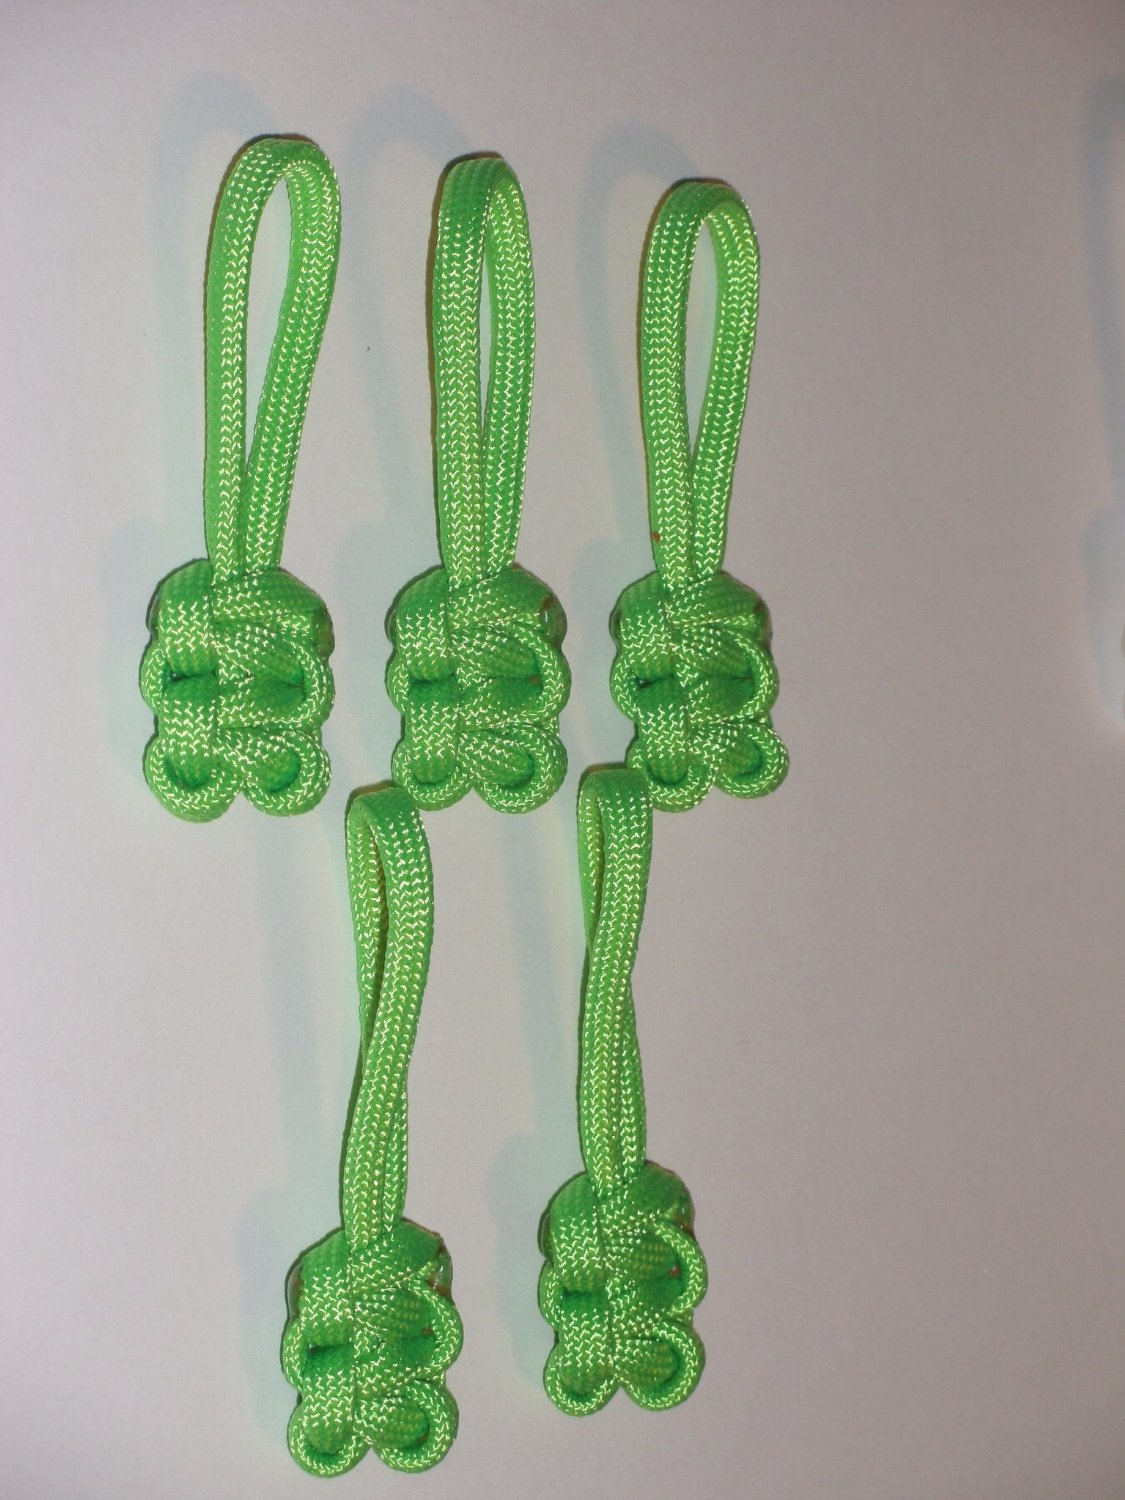 RedVex Paracord Zipper Pulls / Lanyards - Lot of 5 - ~2.5 - Lime Green